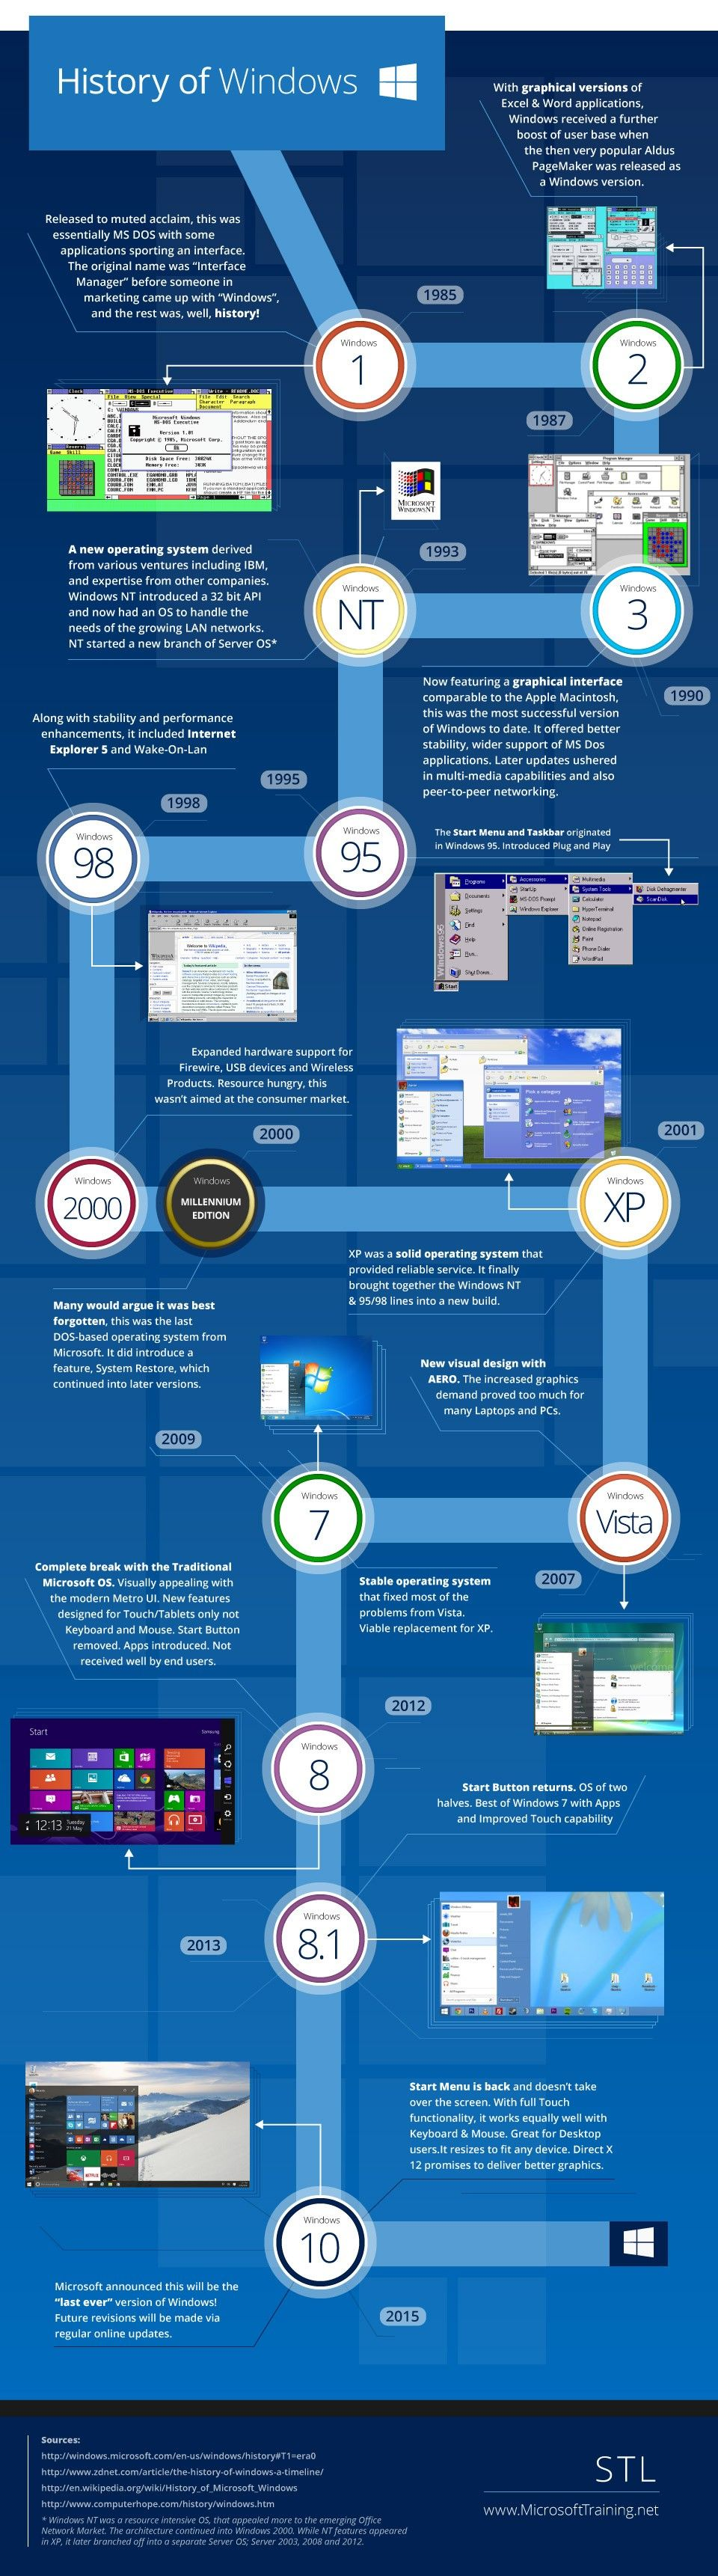 A Quick Look at the History of Windows in Visual Form